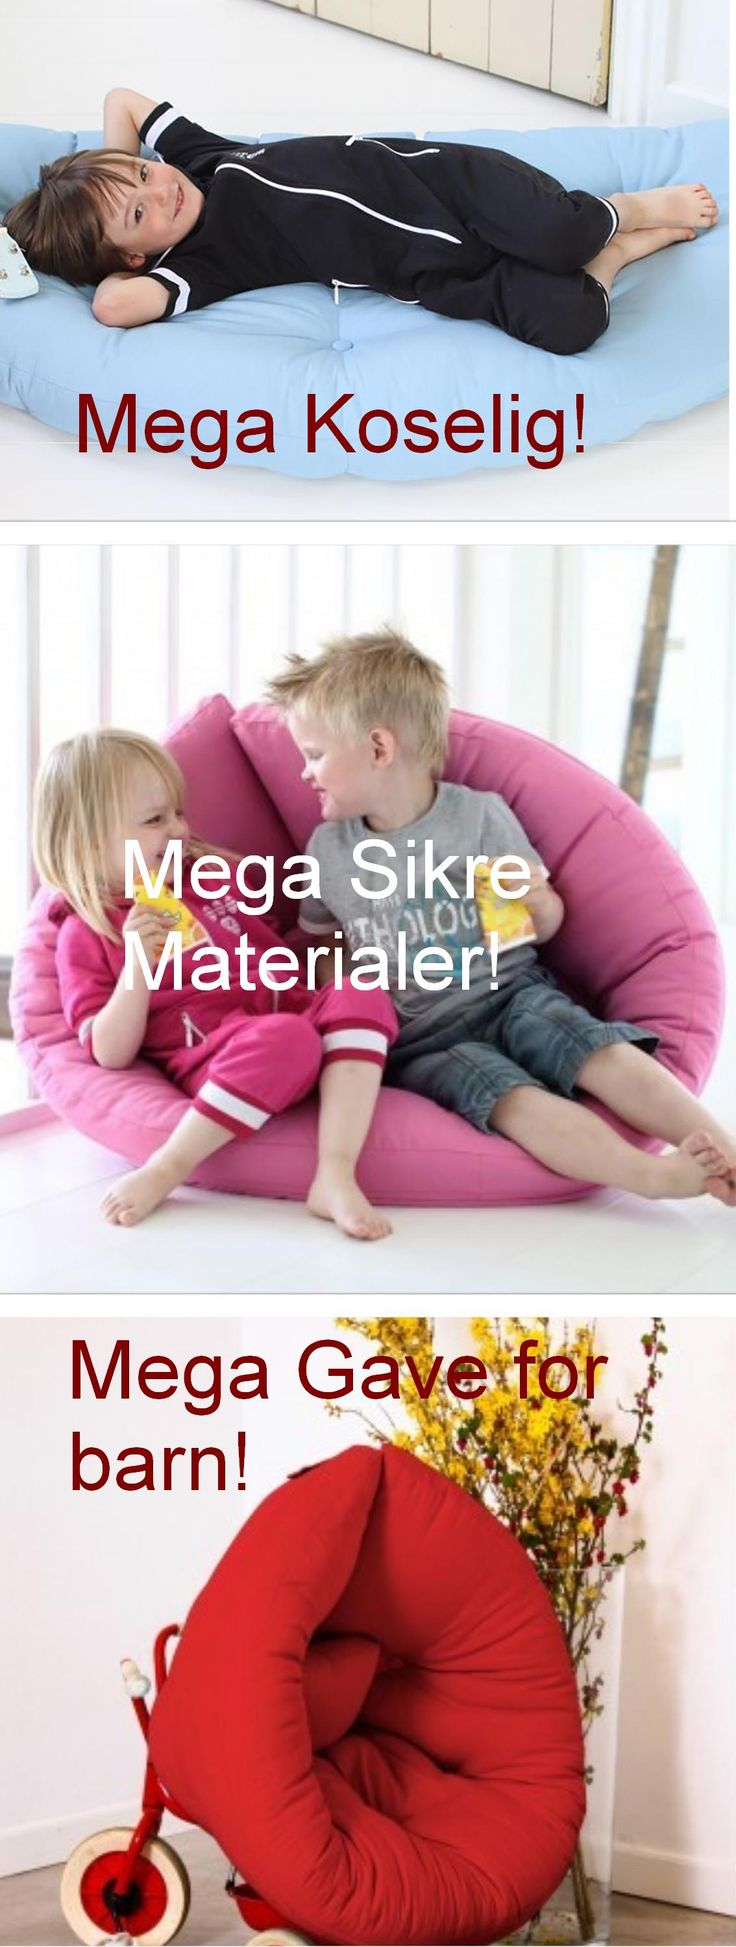 Kjøp Authentic Eco Futon for barn på Stylehouse.no! #bed for kids #[bed #beds #eco friendly mattress #eco-friendly mattress #barneseng